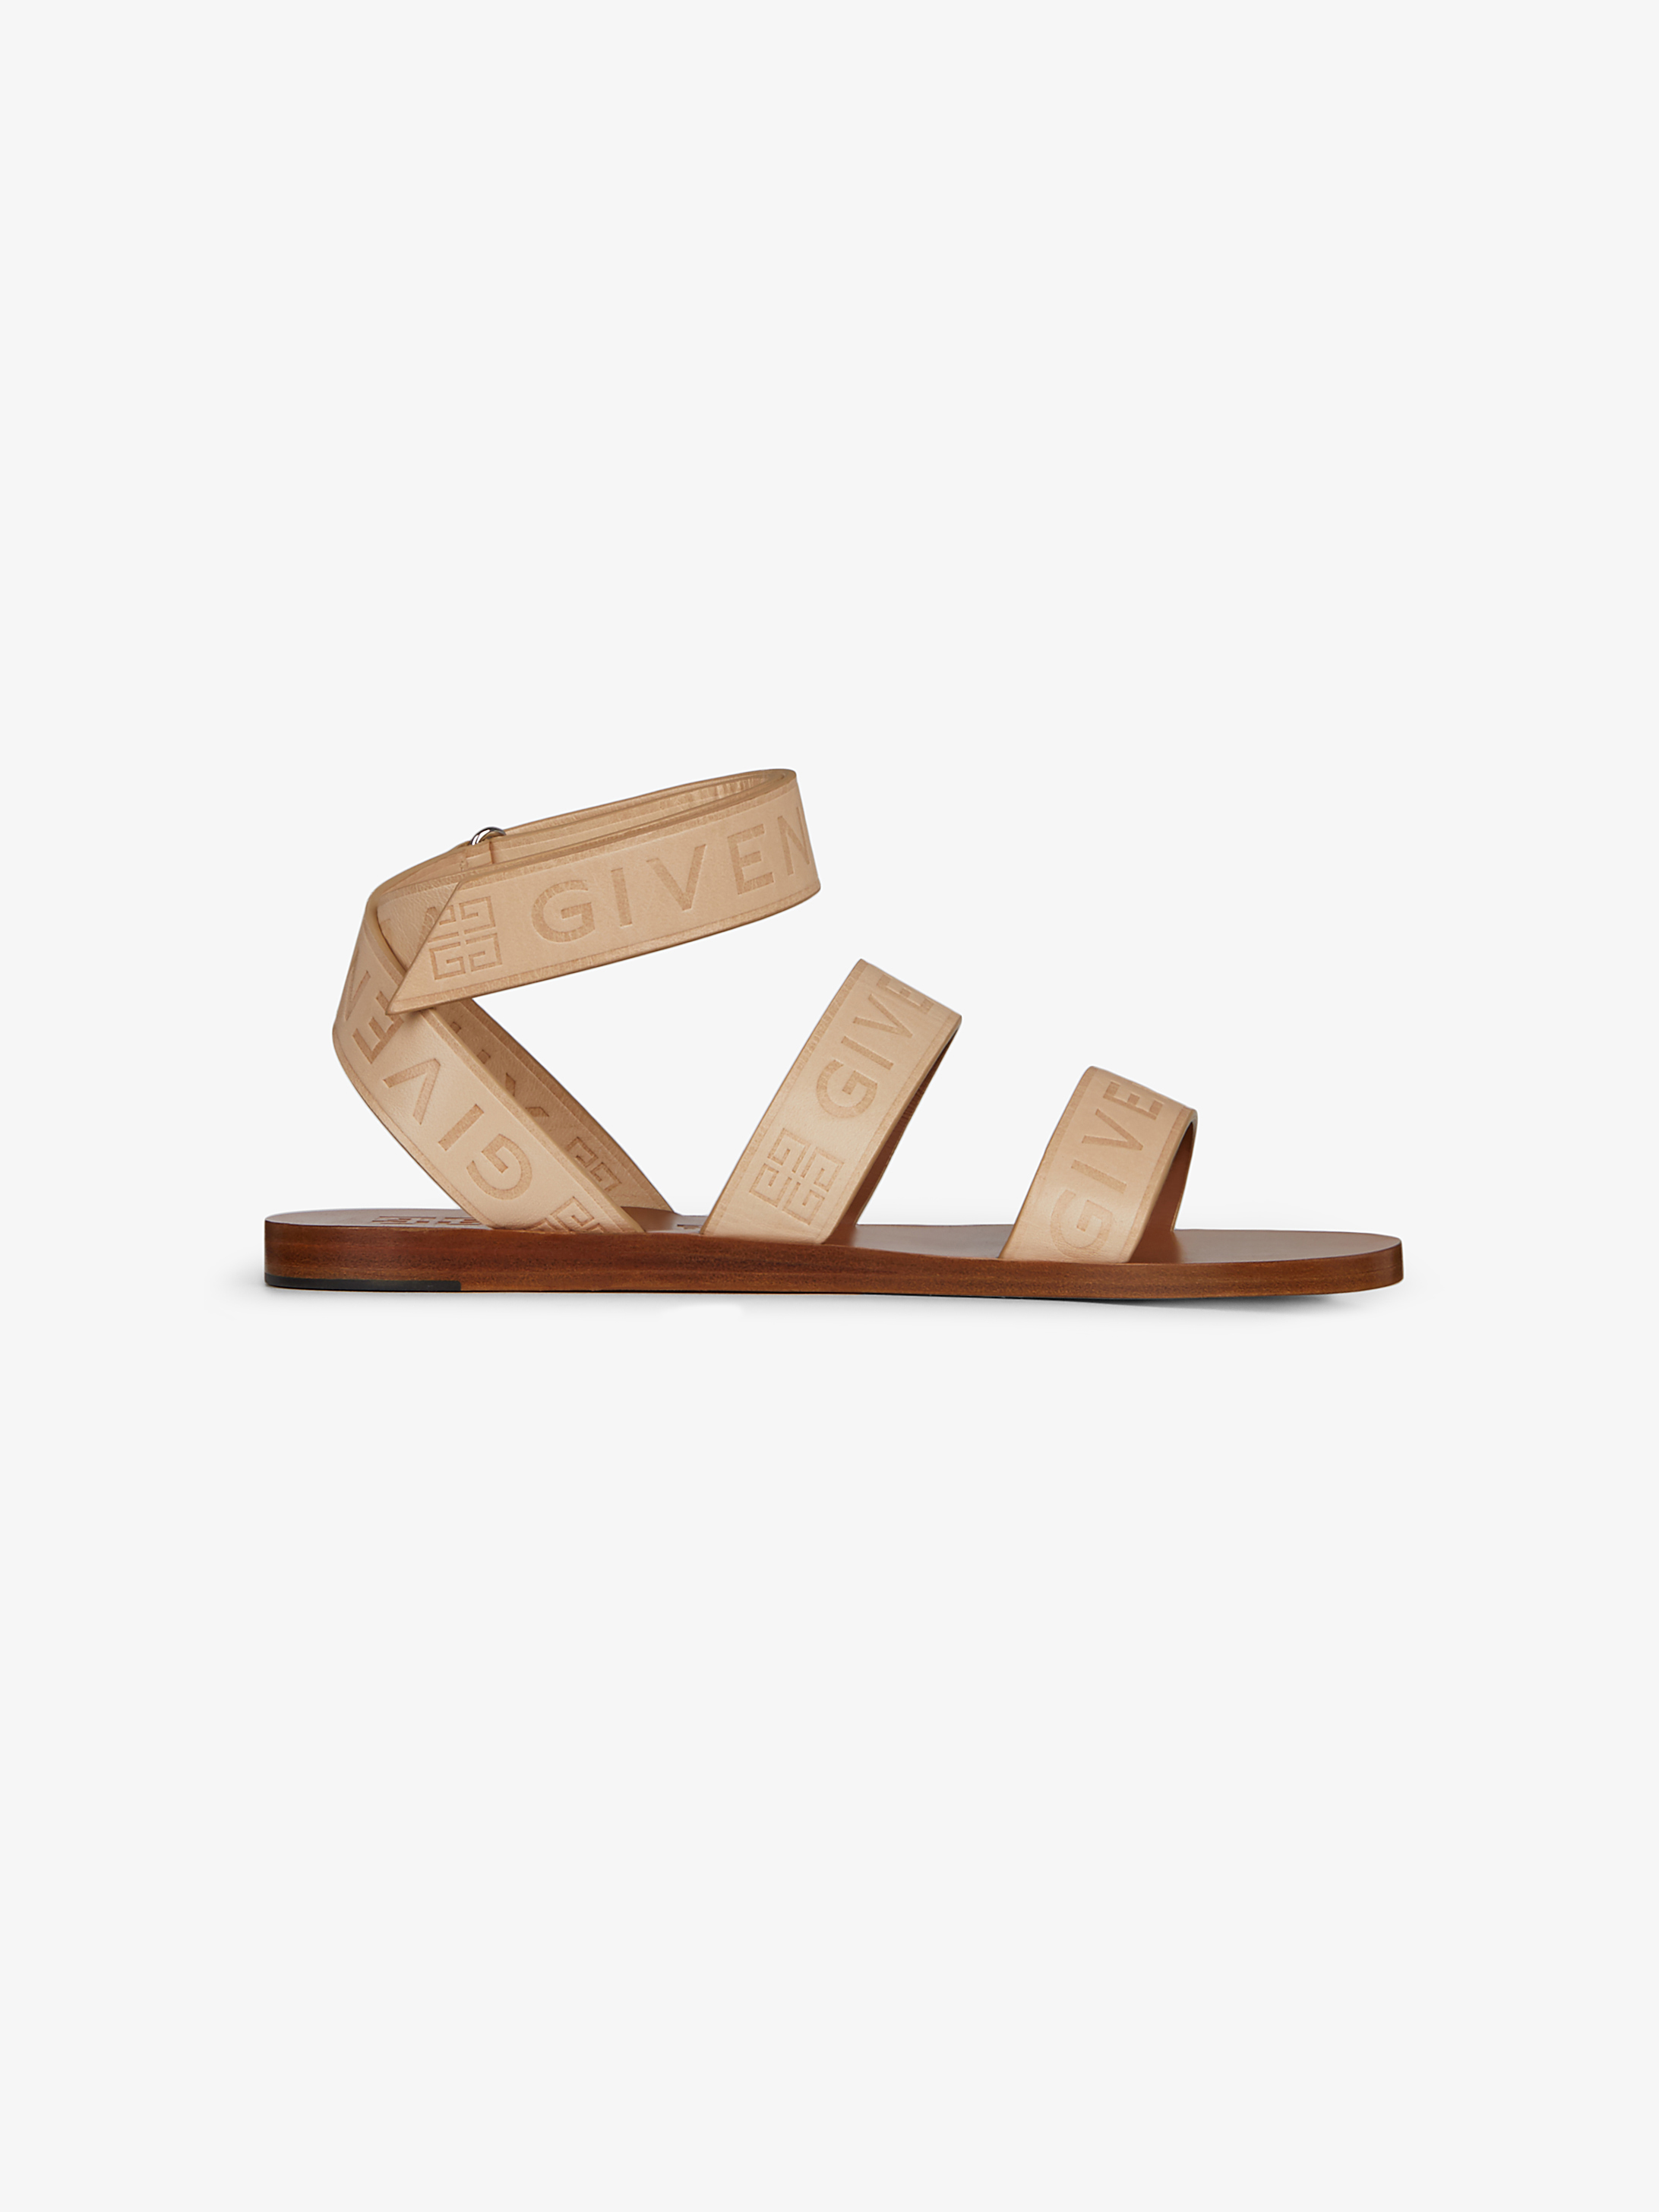 GIVENCHY 4G sandals in leather